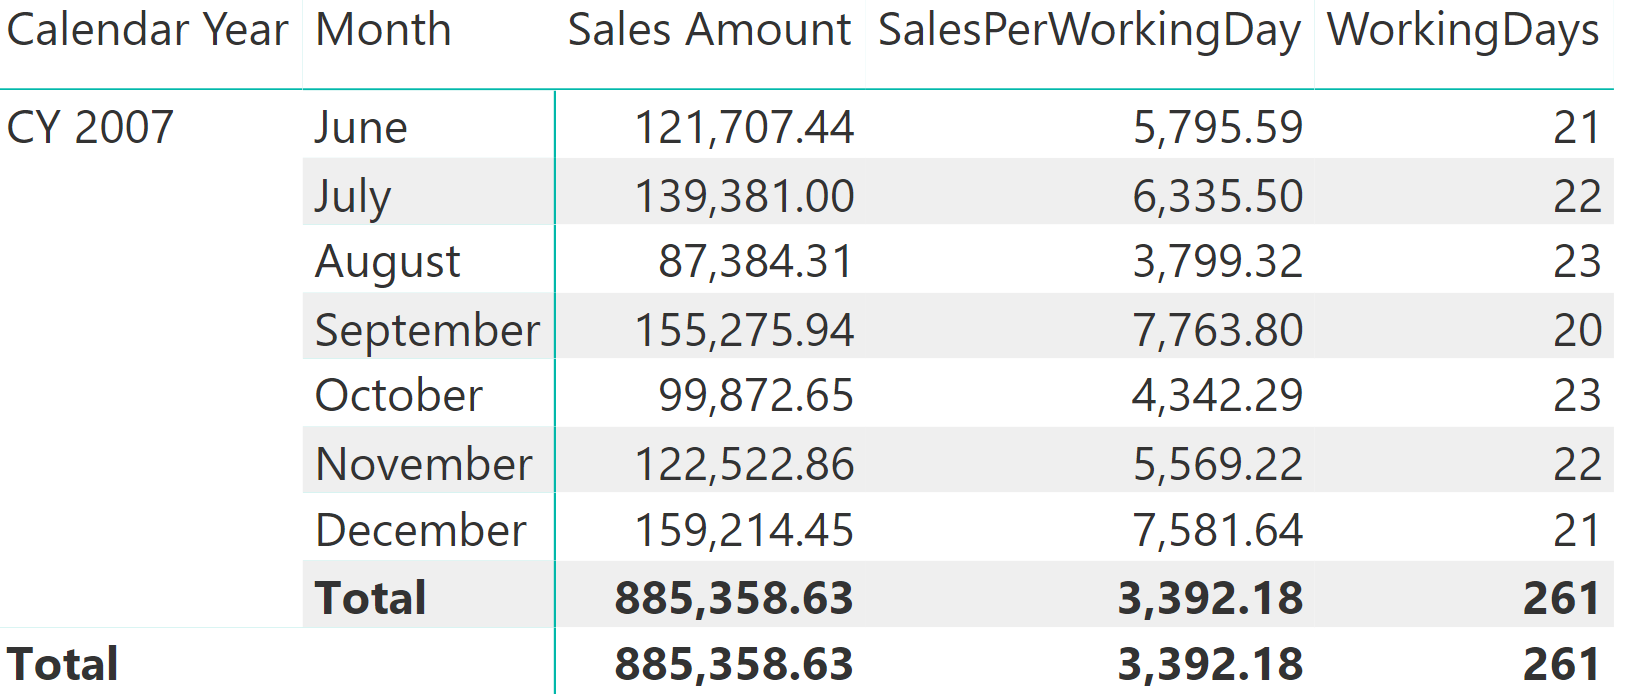 Summing values for the total - SQLBI